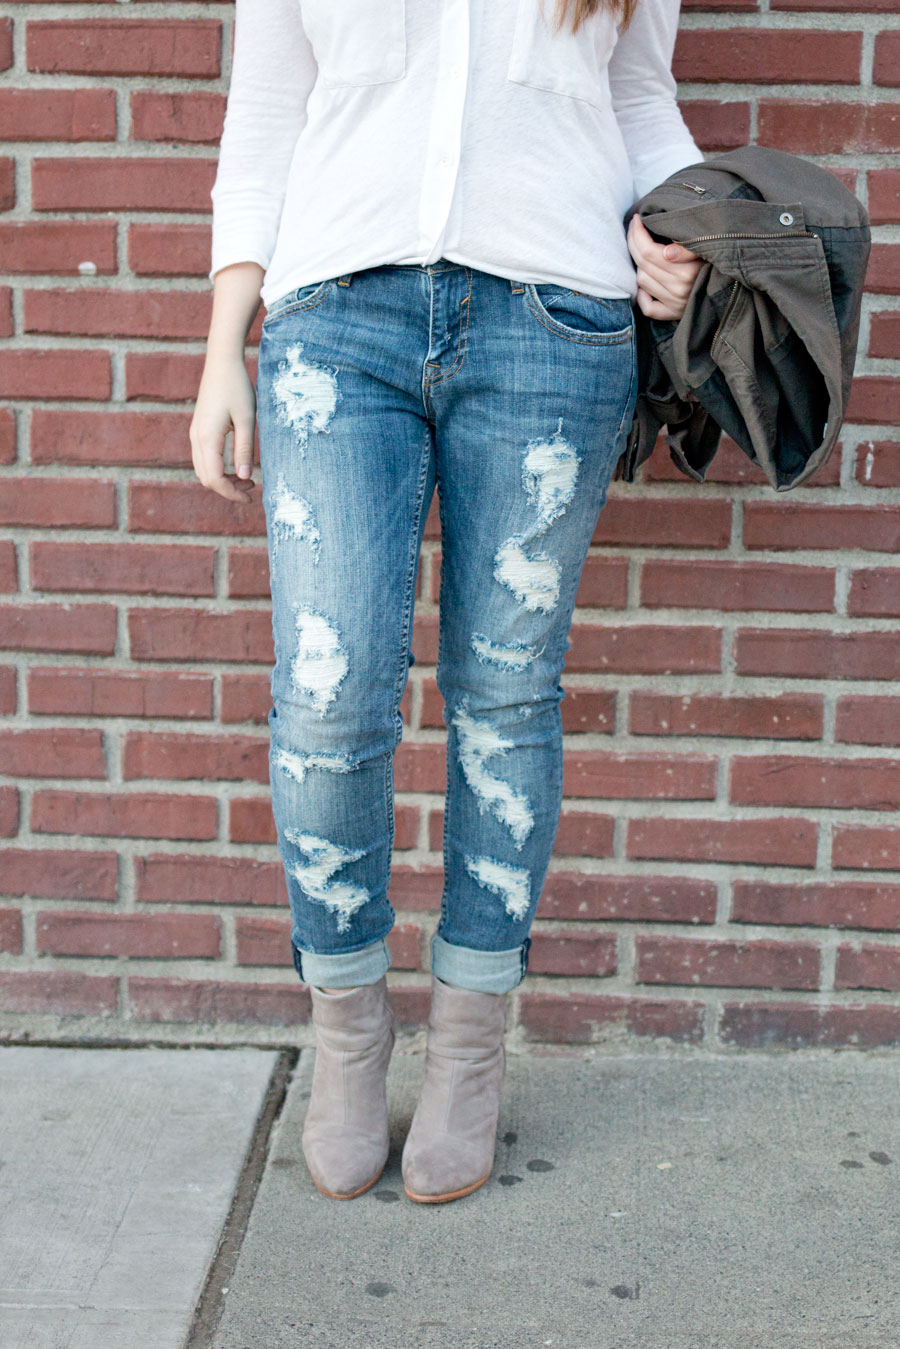 How to Wear Distressed Jeans: James Perse White Button Up, Vigoss Deconstructed Jeans, Rag & Bone Gray Newbury Booties Outfit / hellorigby seattle fashion blog